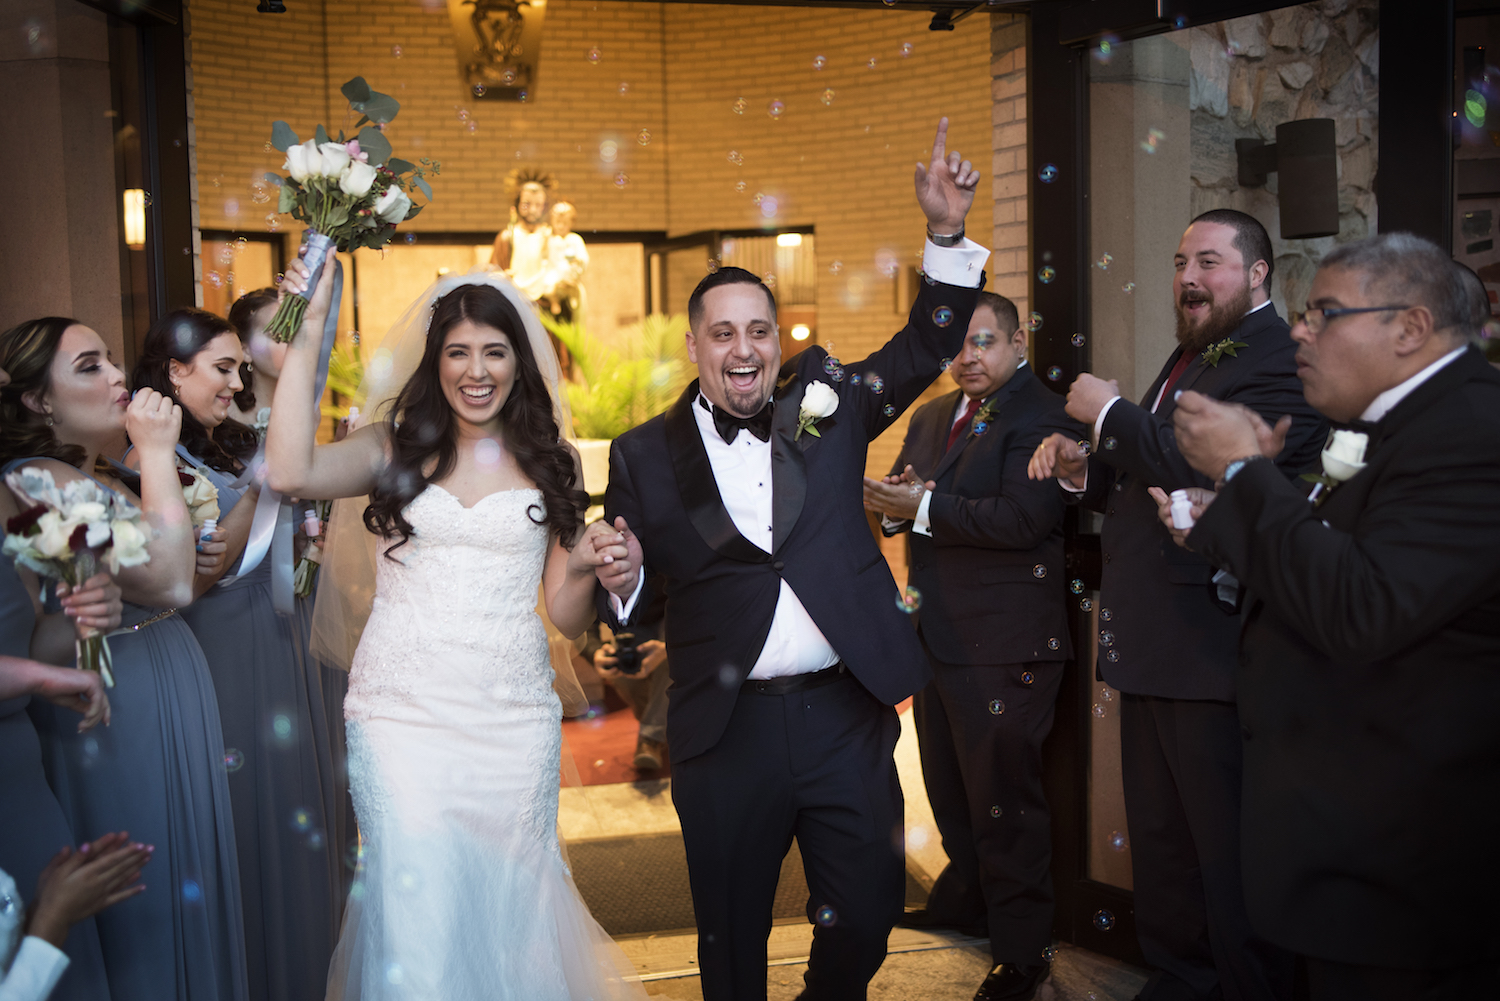 sylvia&alejandro-cheering-walking-down-aisle-church-ceremony-nj-wedding-photography